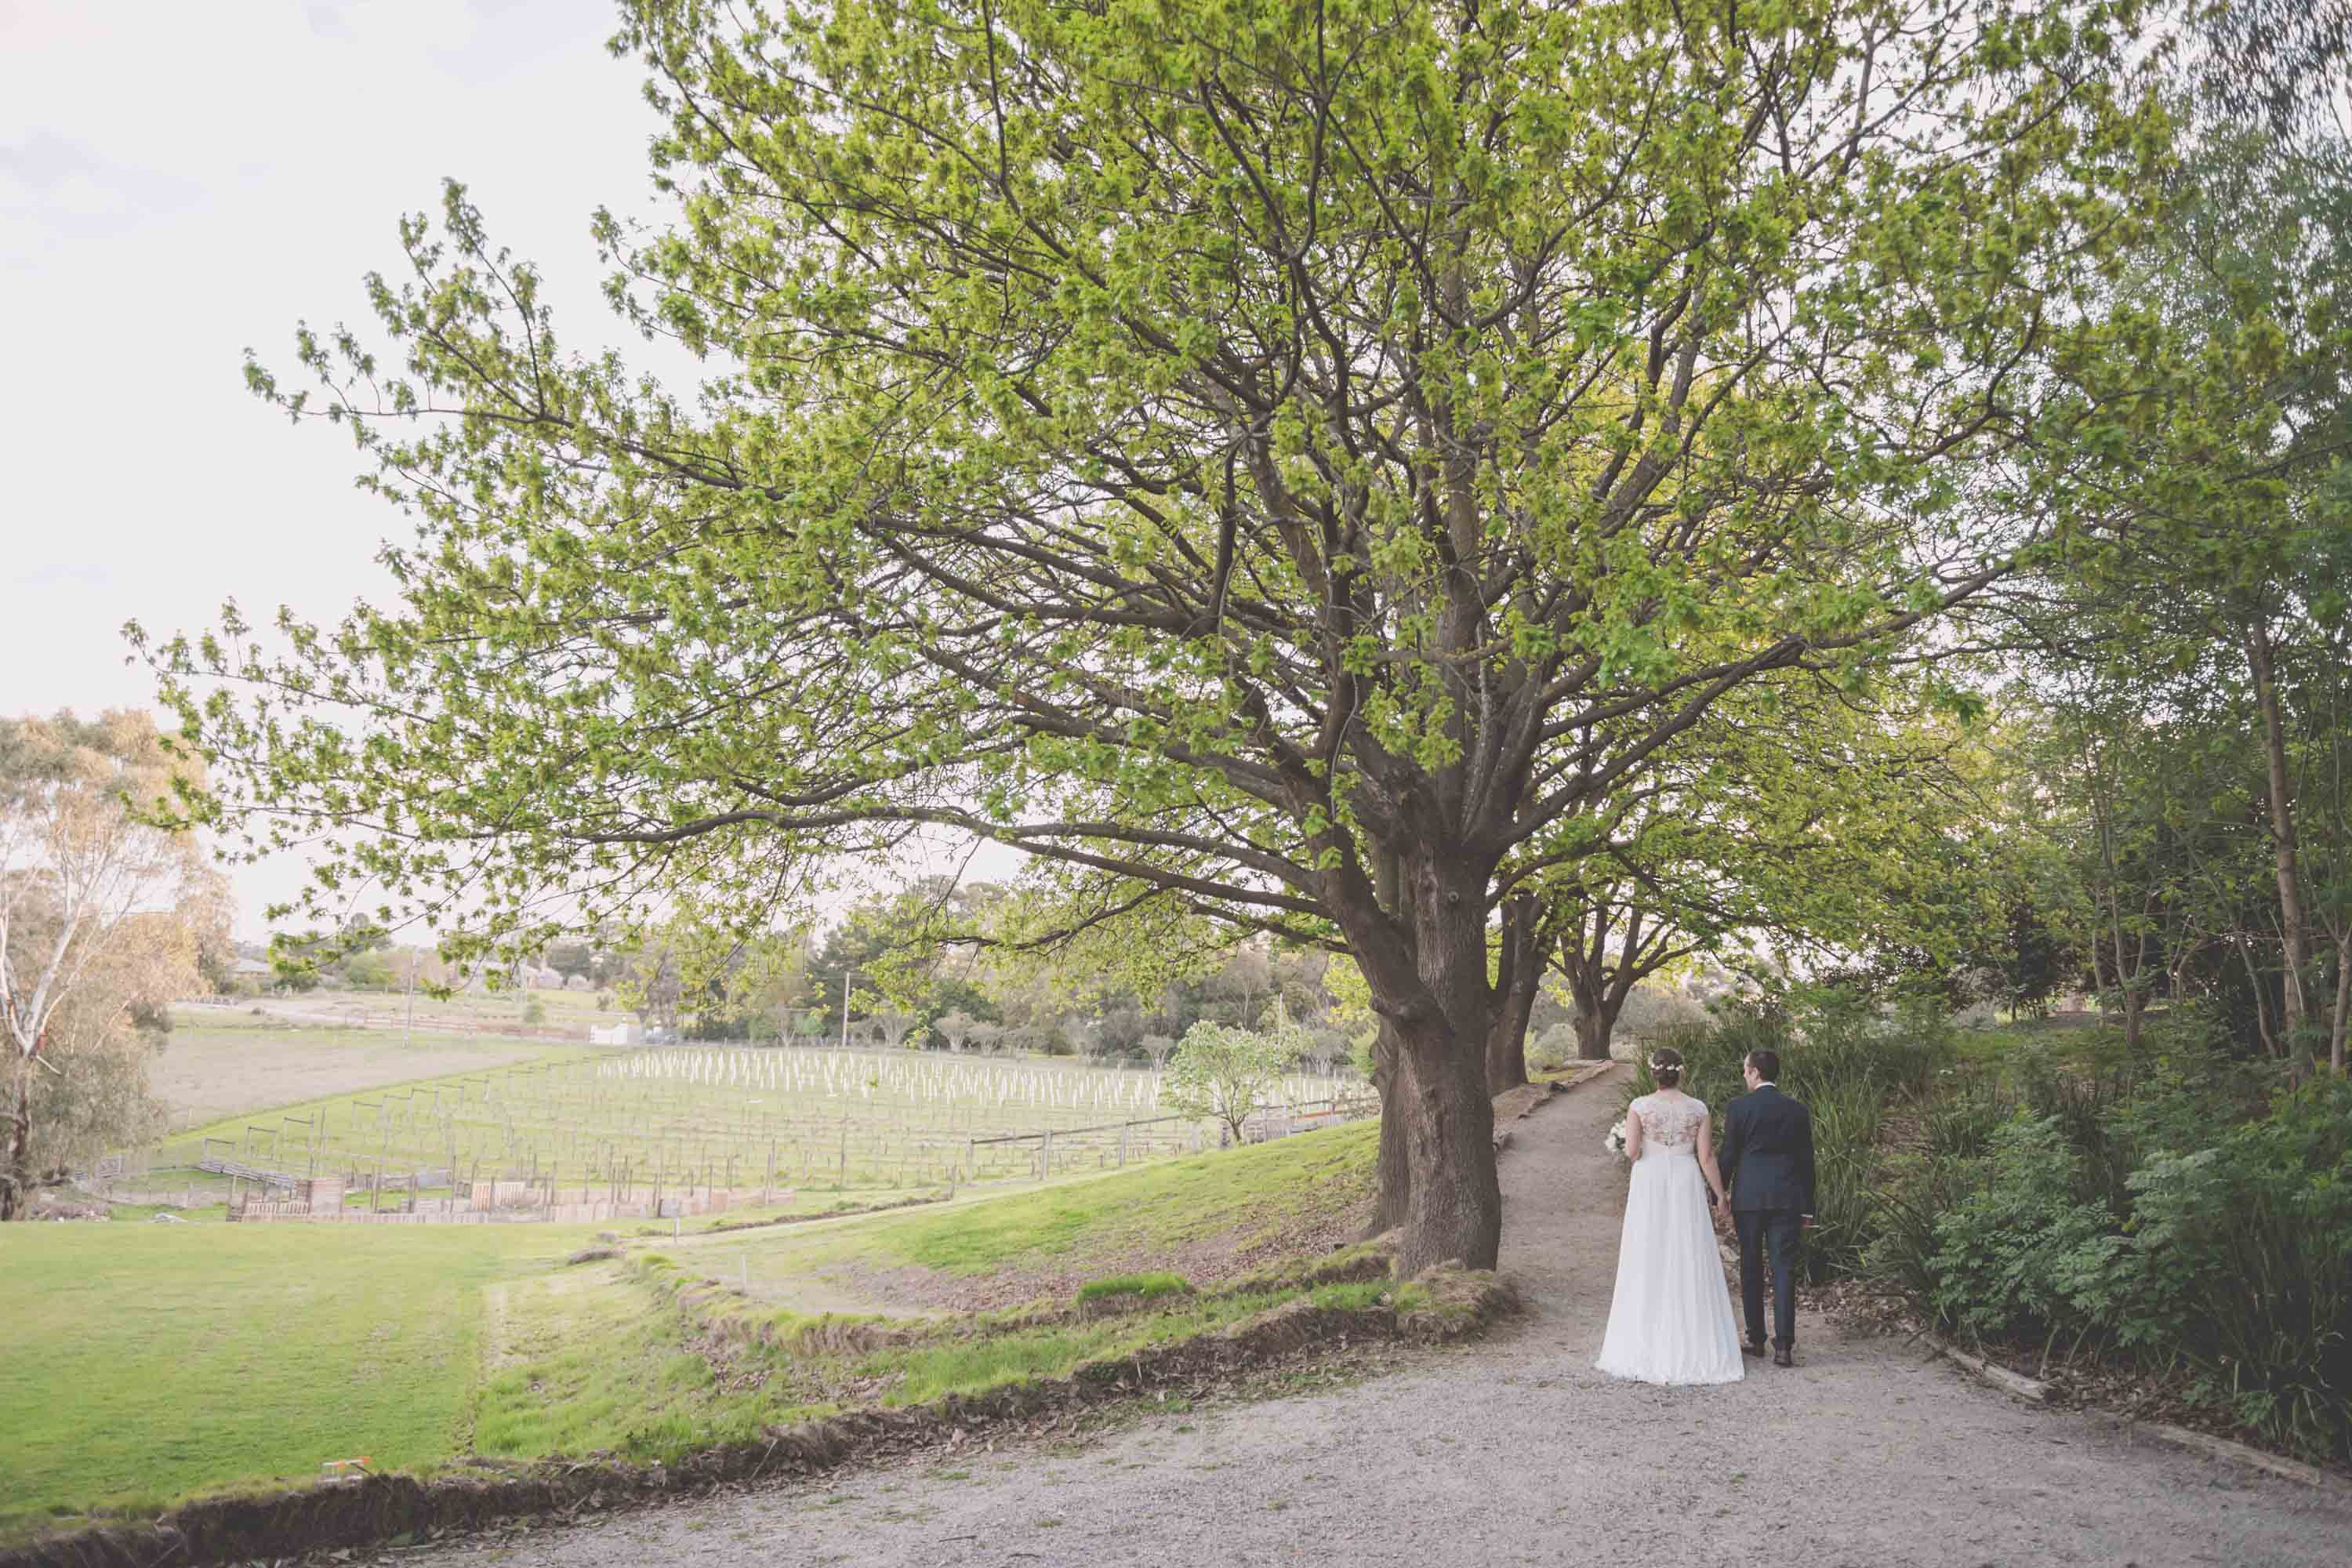 A bride and groom walk up the aisle together under a green oak tree.